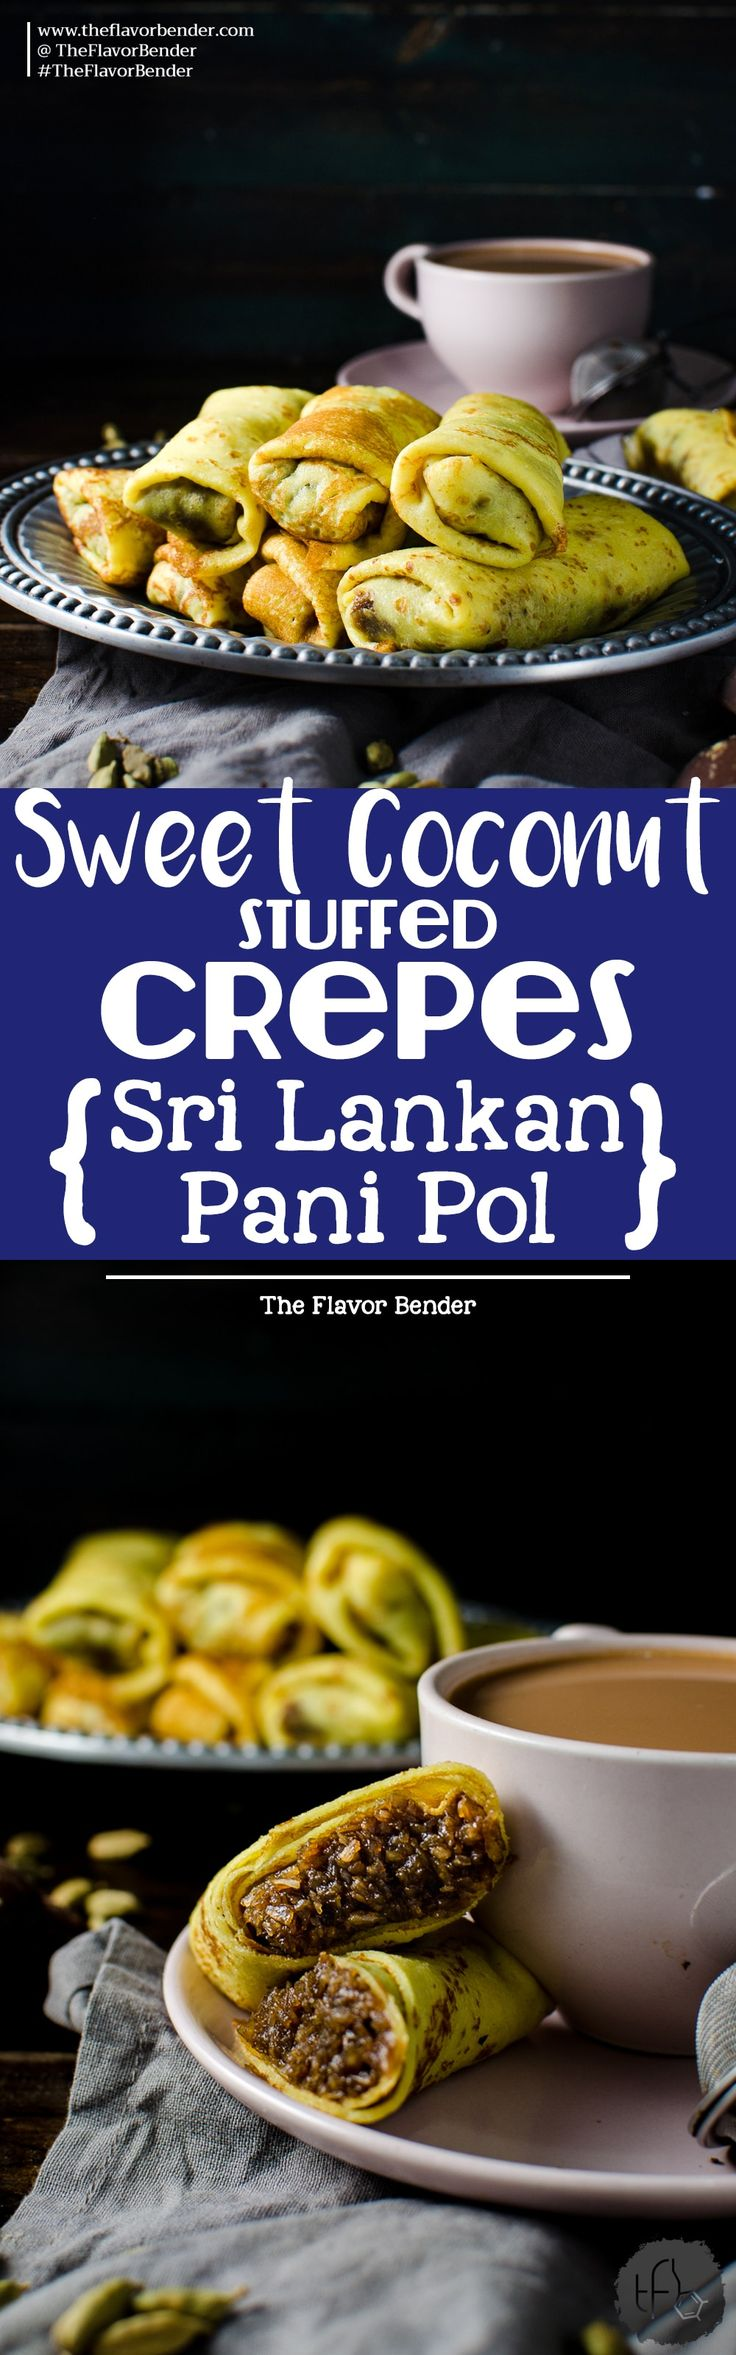 Sweet Coconut stuffed Crepes - Sri Lankan Pani Pol - Soft turmeric crepes, filled with a spiced sweet coconut filling. A Sri Lankan classic sweet snack loved by kids and adults. Perfect for tea time, parties, or simple dessert! A wonderfully, unique and delicious sweet treat that you will love!